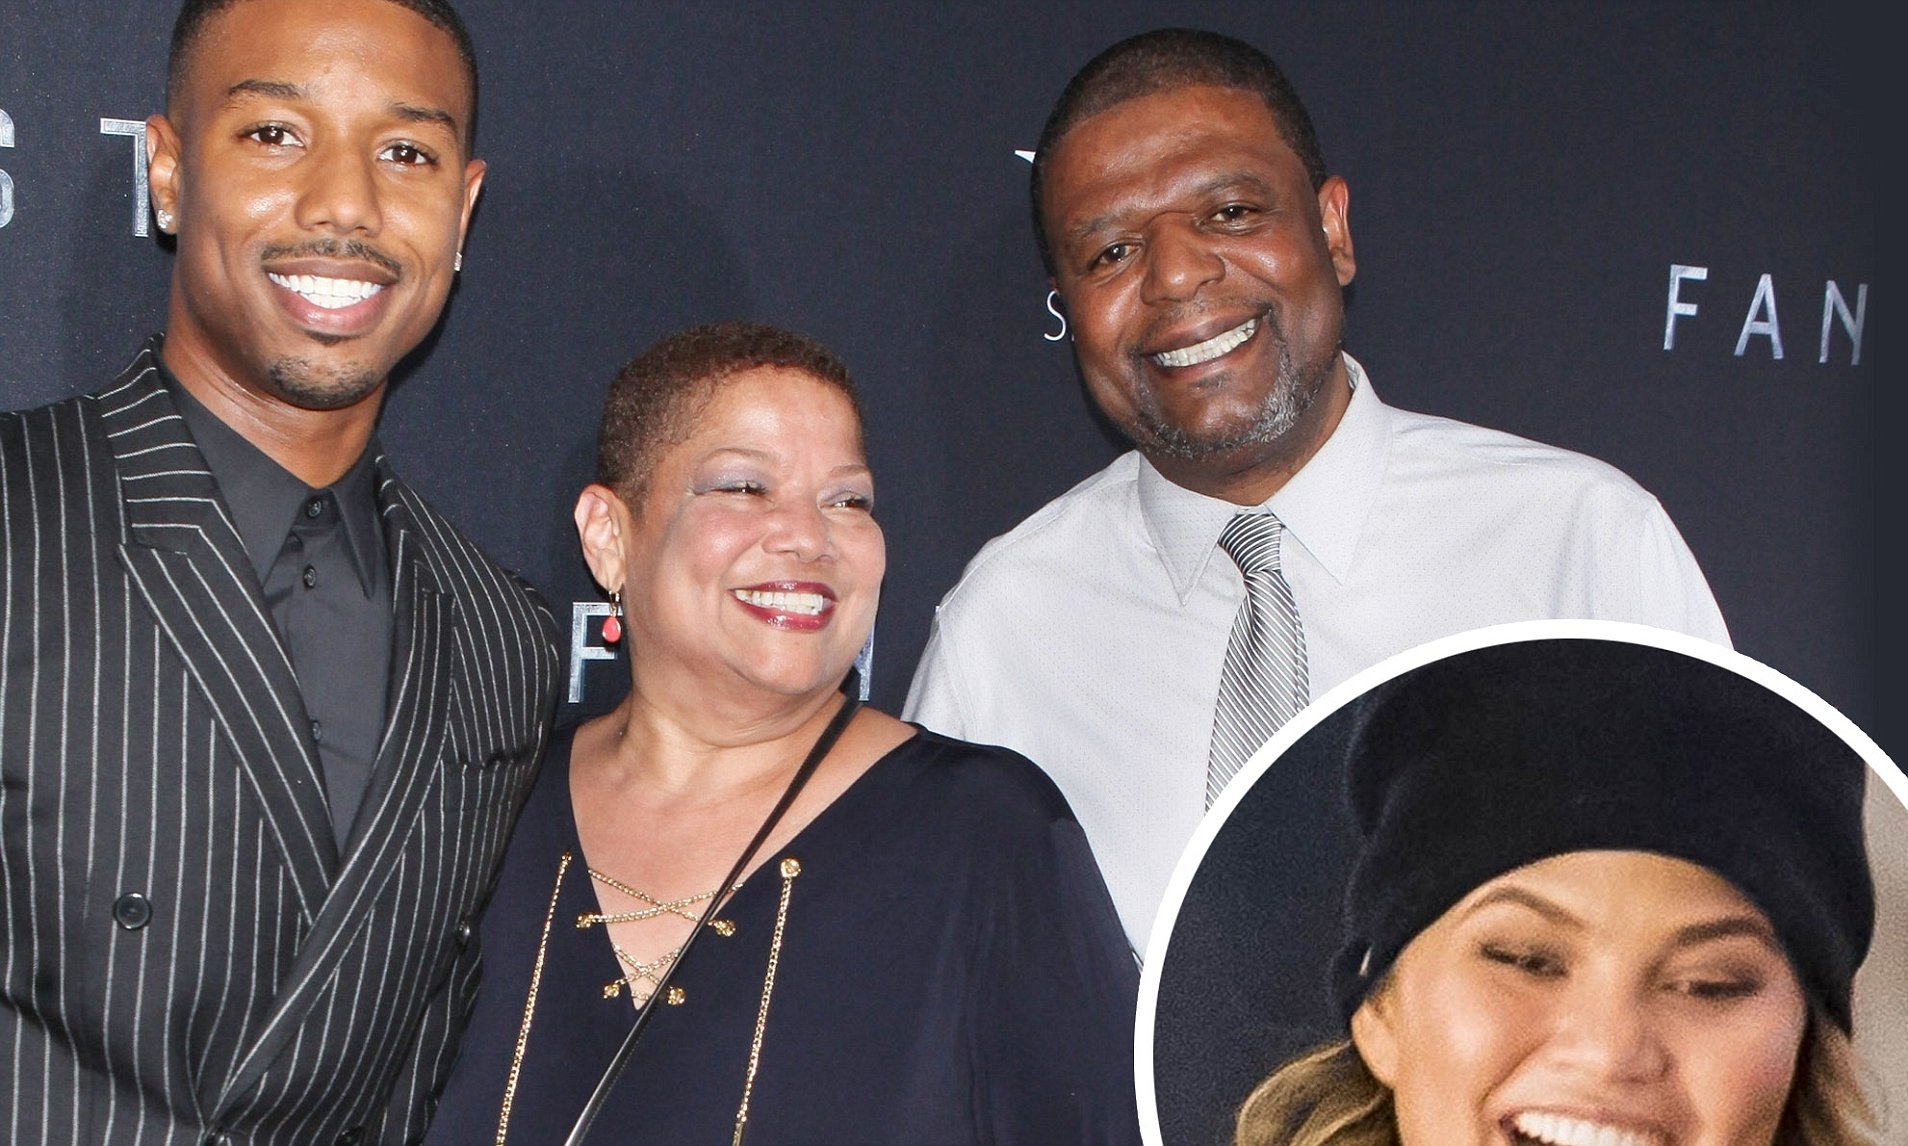 Michael B. Jordan Slams Hater Over Living With His Parents